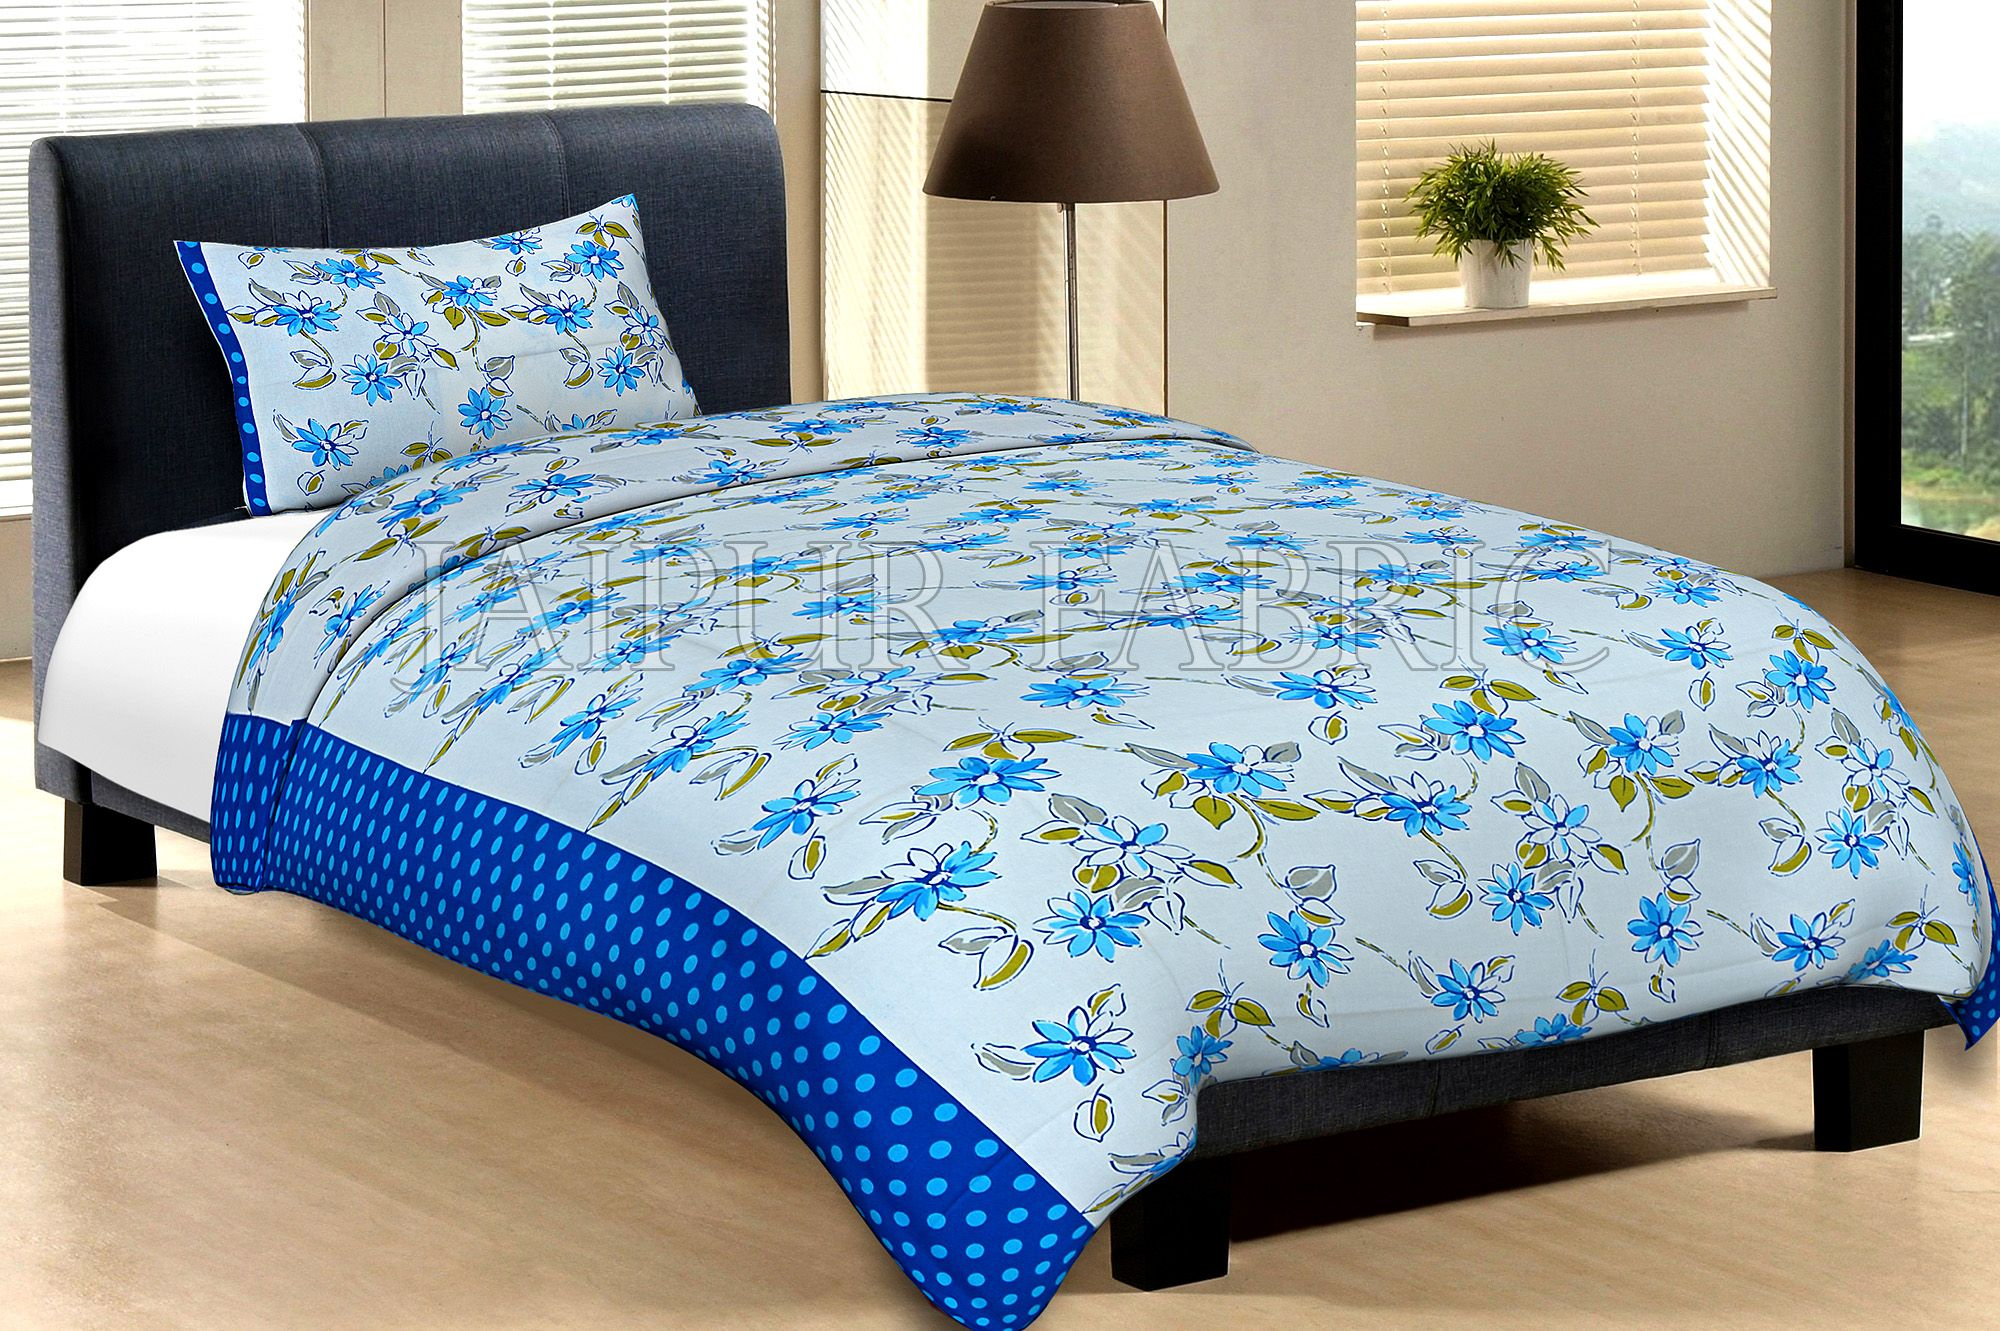 Blue Border With Light Blue  Polka Dot And White Base With Blue Flower Cotton Single Bed Sheet with 1 pillow Cover